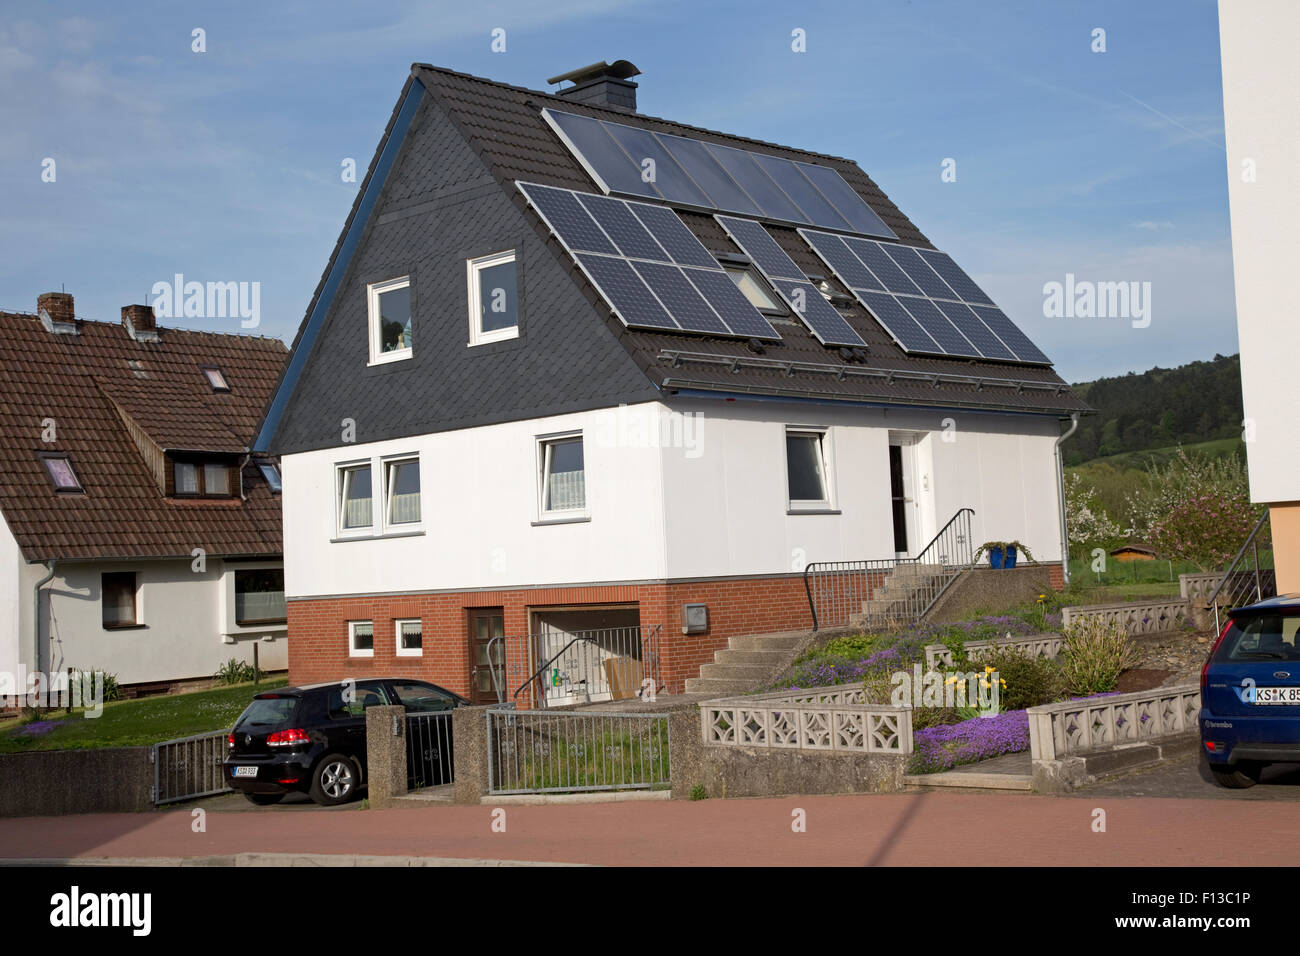 Photovoltaic solar panels PV roof on private house Germany - Stock Image